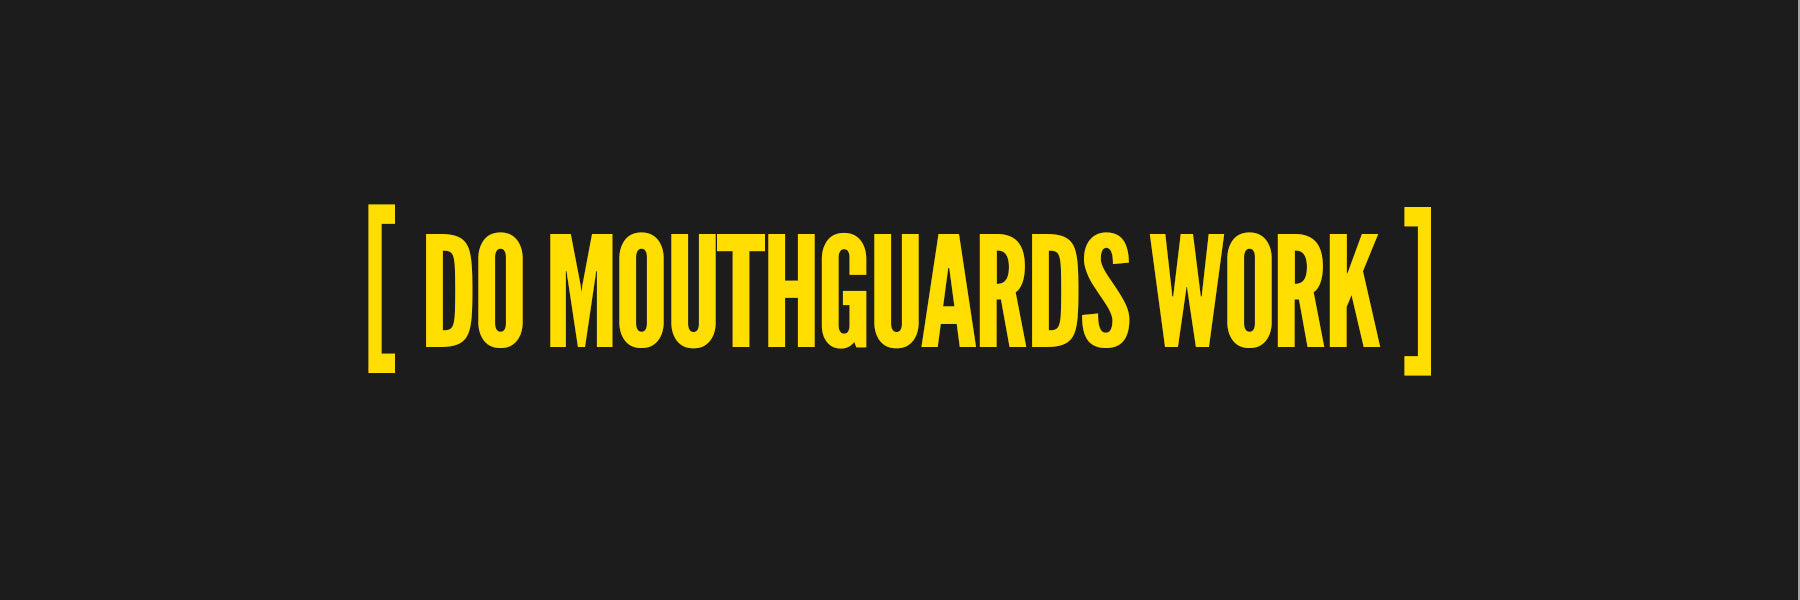 Do Athletic Mouthguards Work